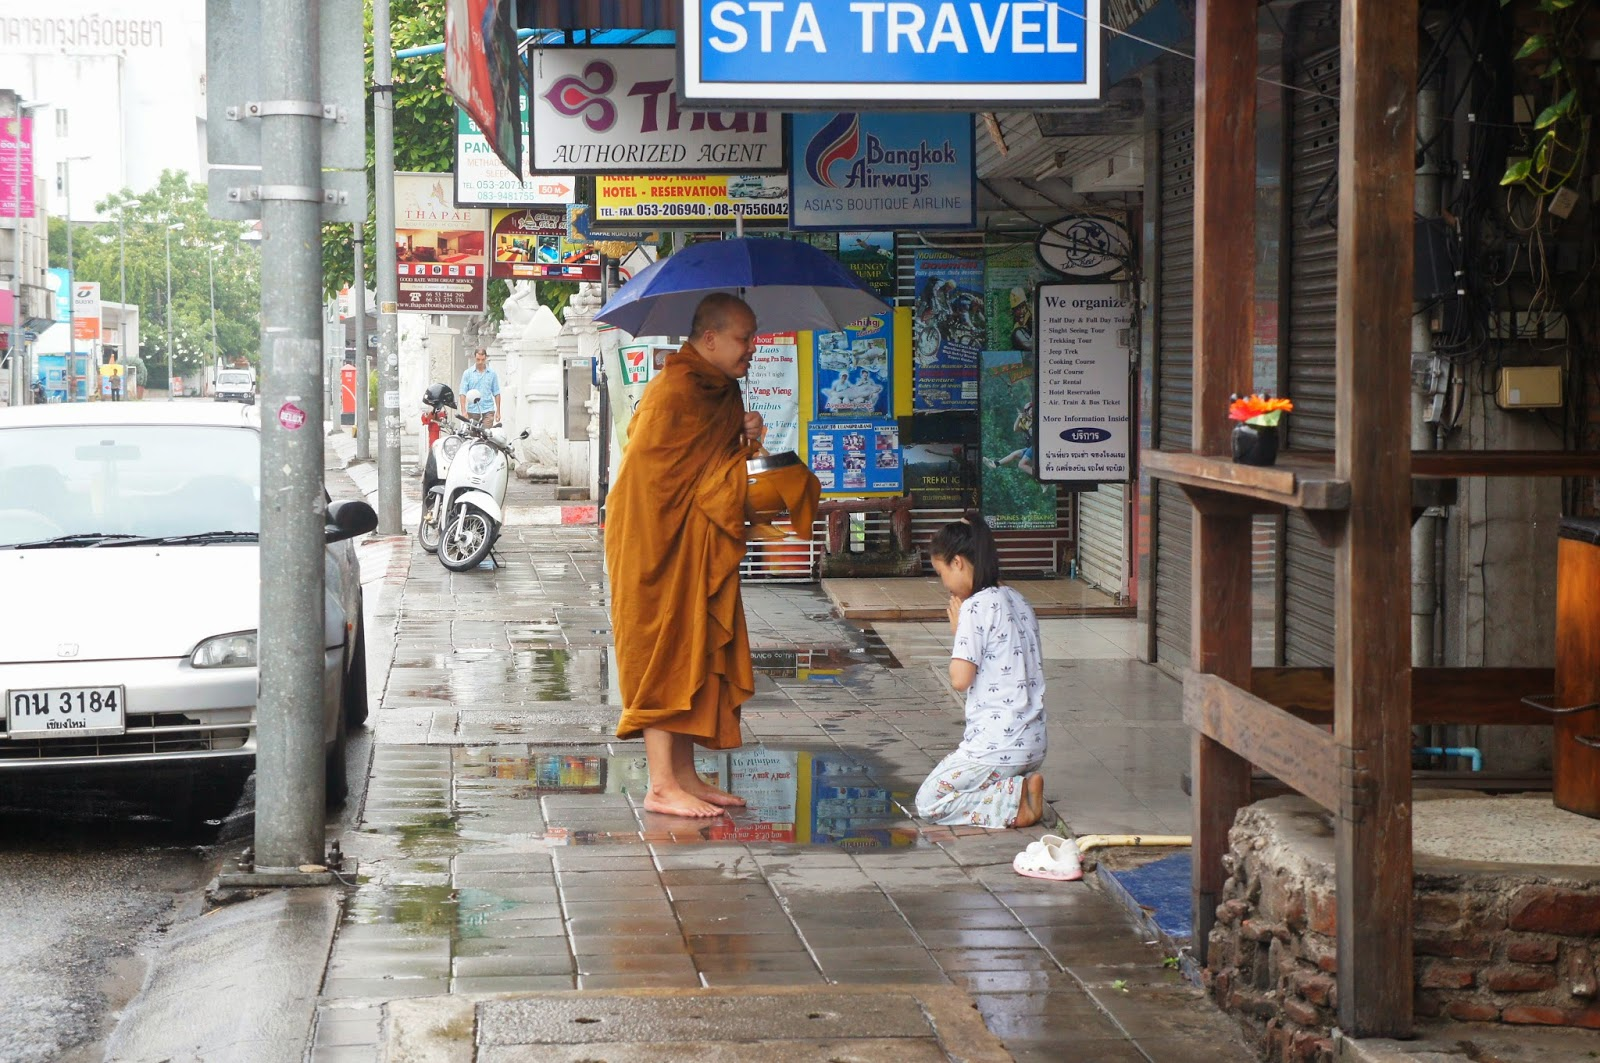 Chiang Mai - A monk gives a young woman a blessing after she gives him food